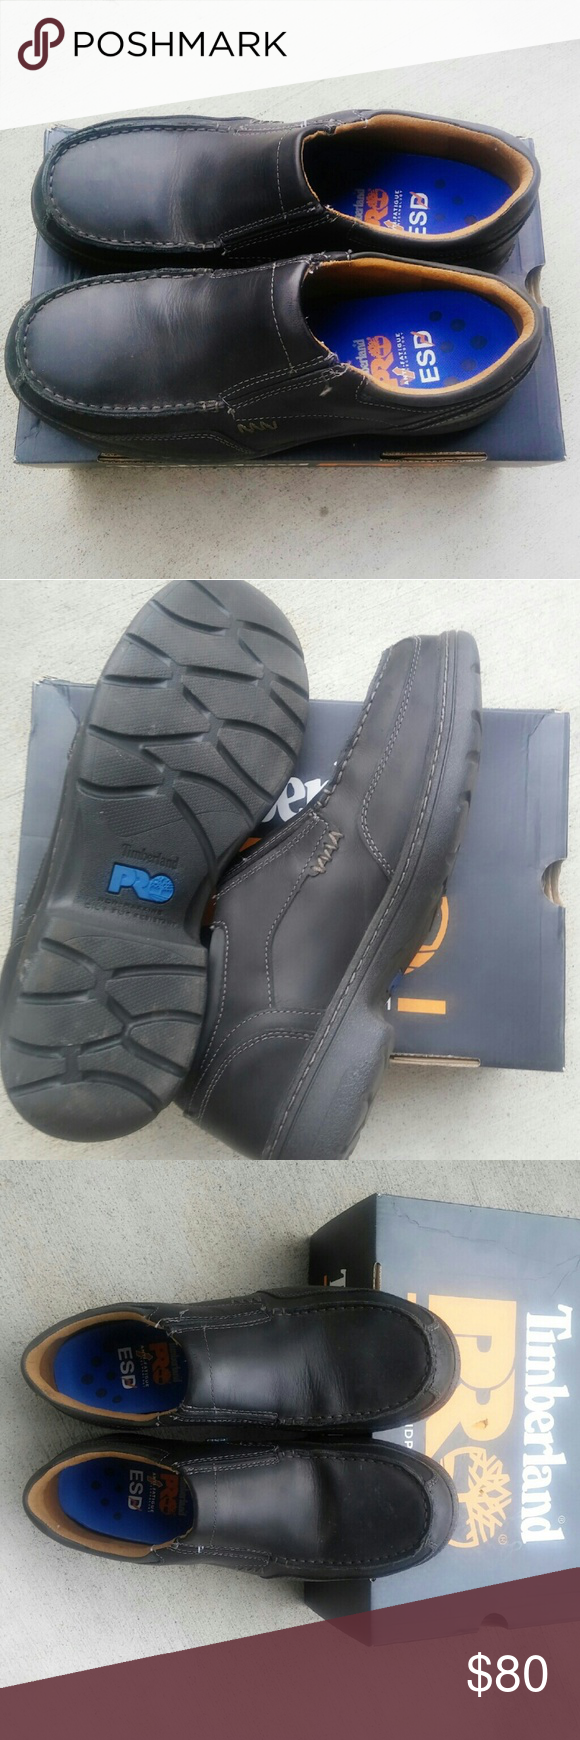 Branston Slip On Alloy Toe Safety Work Shoes Perfect work shoes, very comfy and easy to slip on. Worn just one time. Comes with box Timberland Shoes Loafers & Slip-Ons